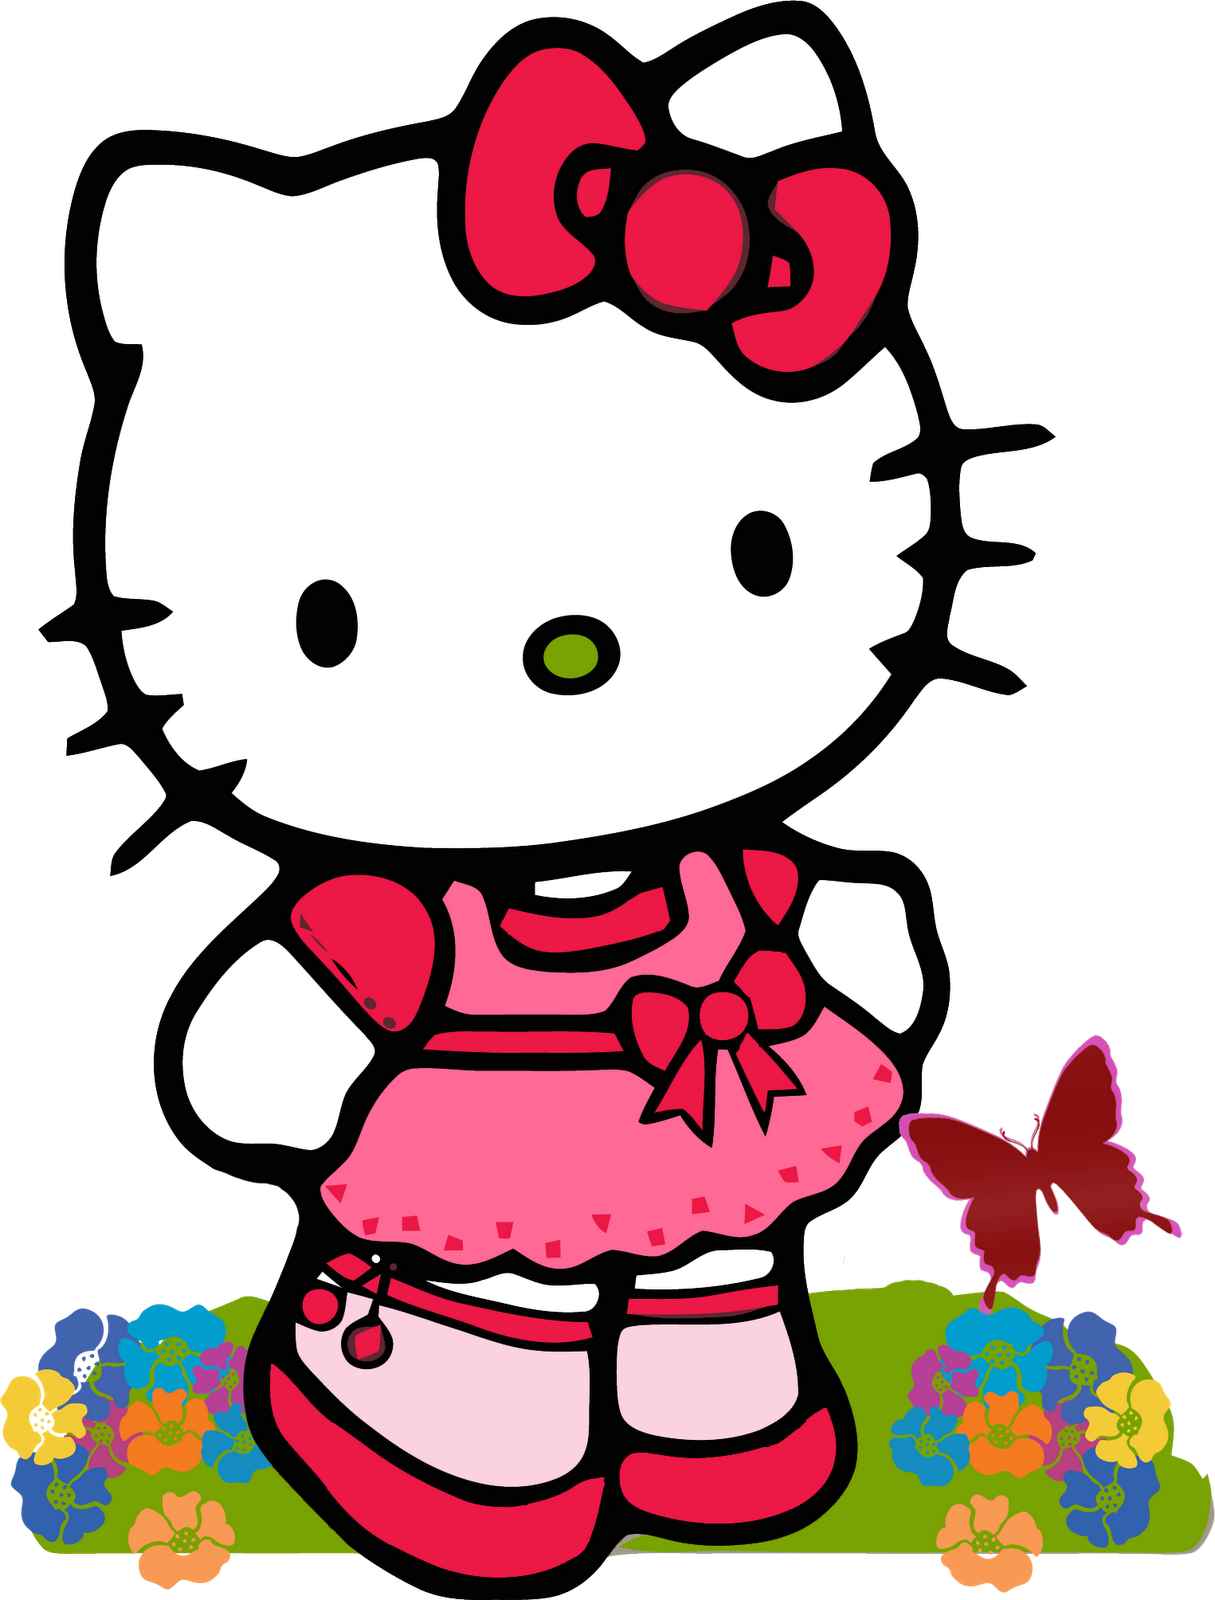 Kitty images clipart images gallery for free download.